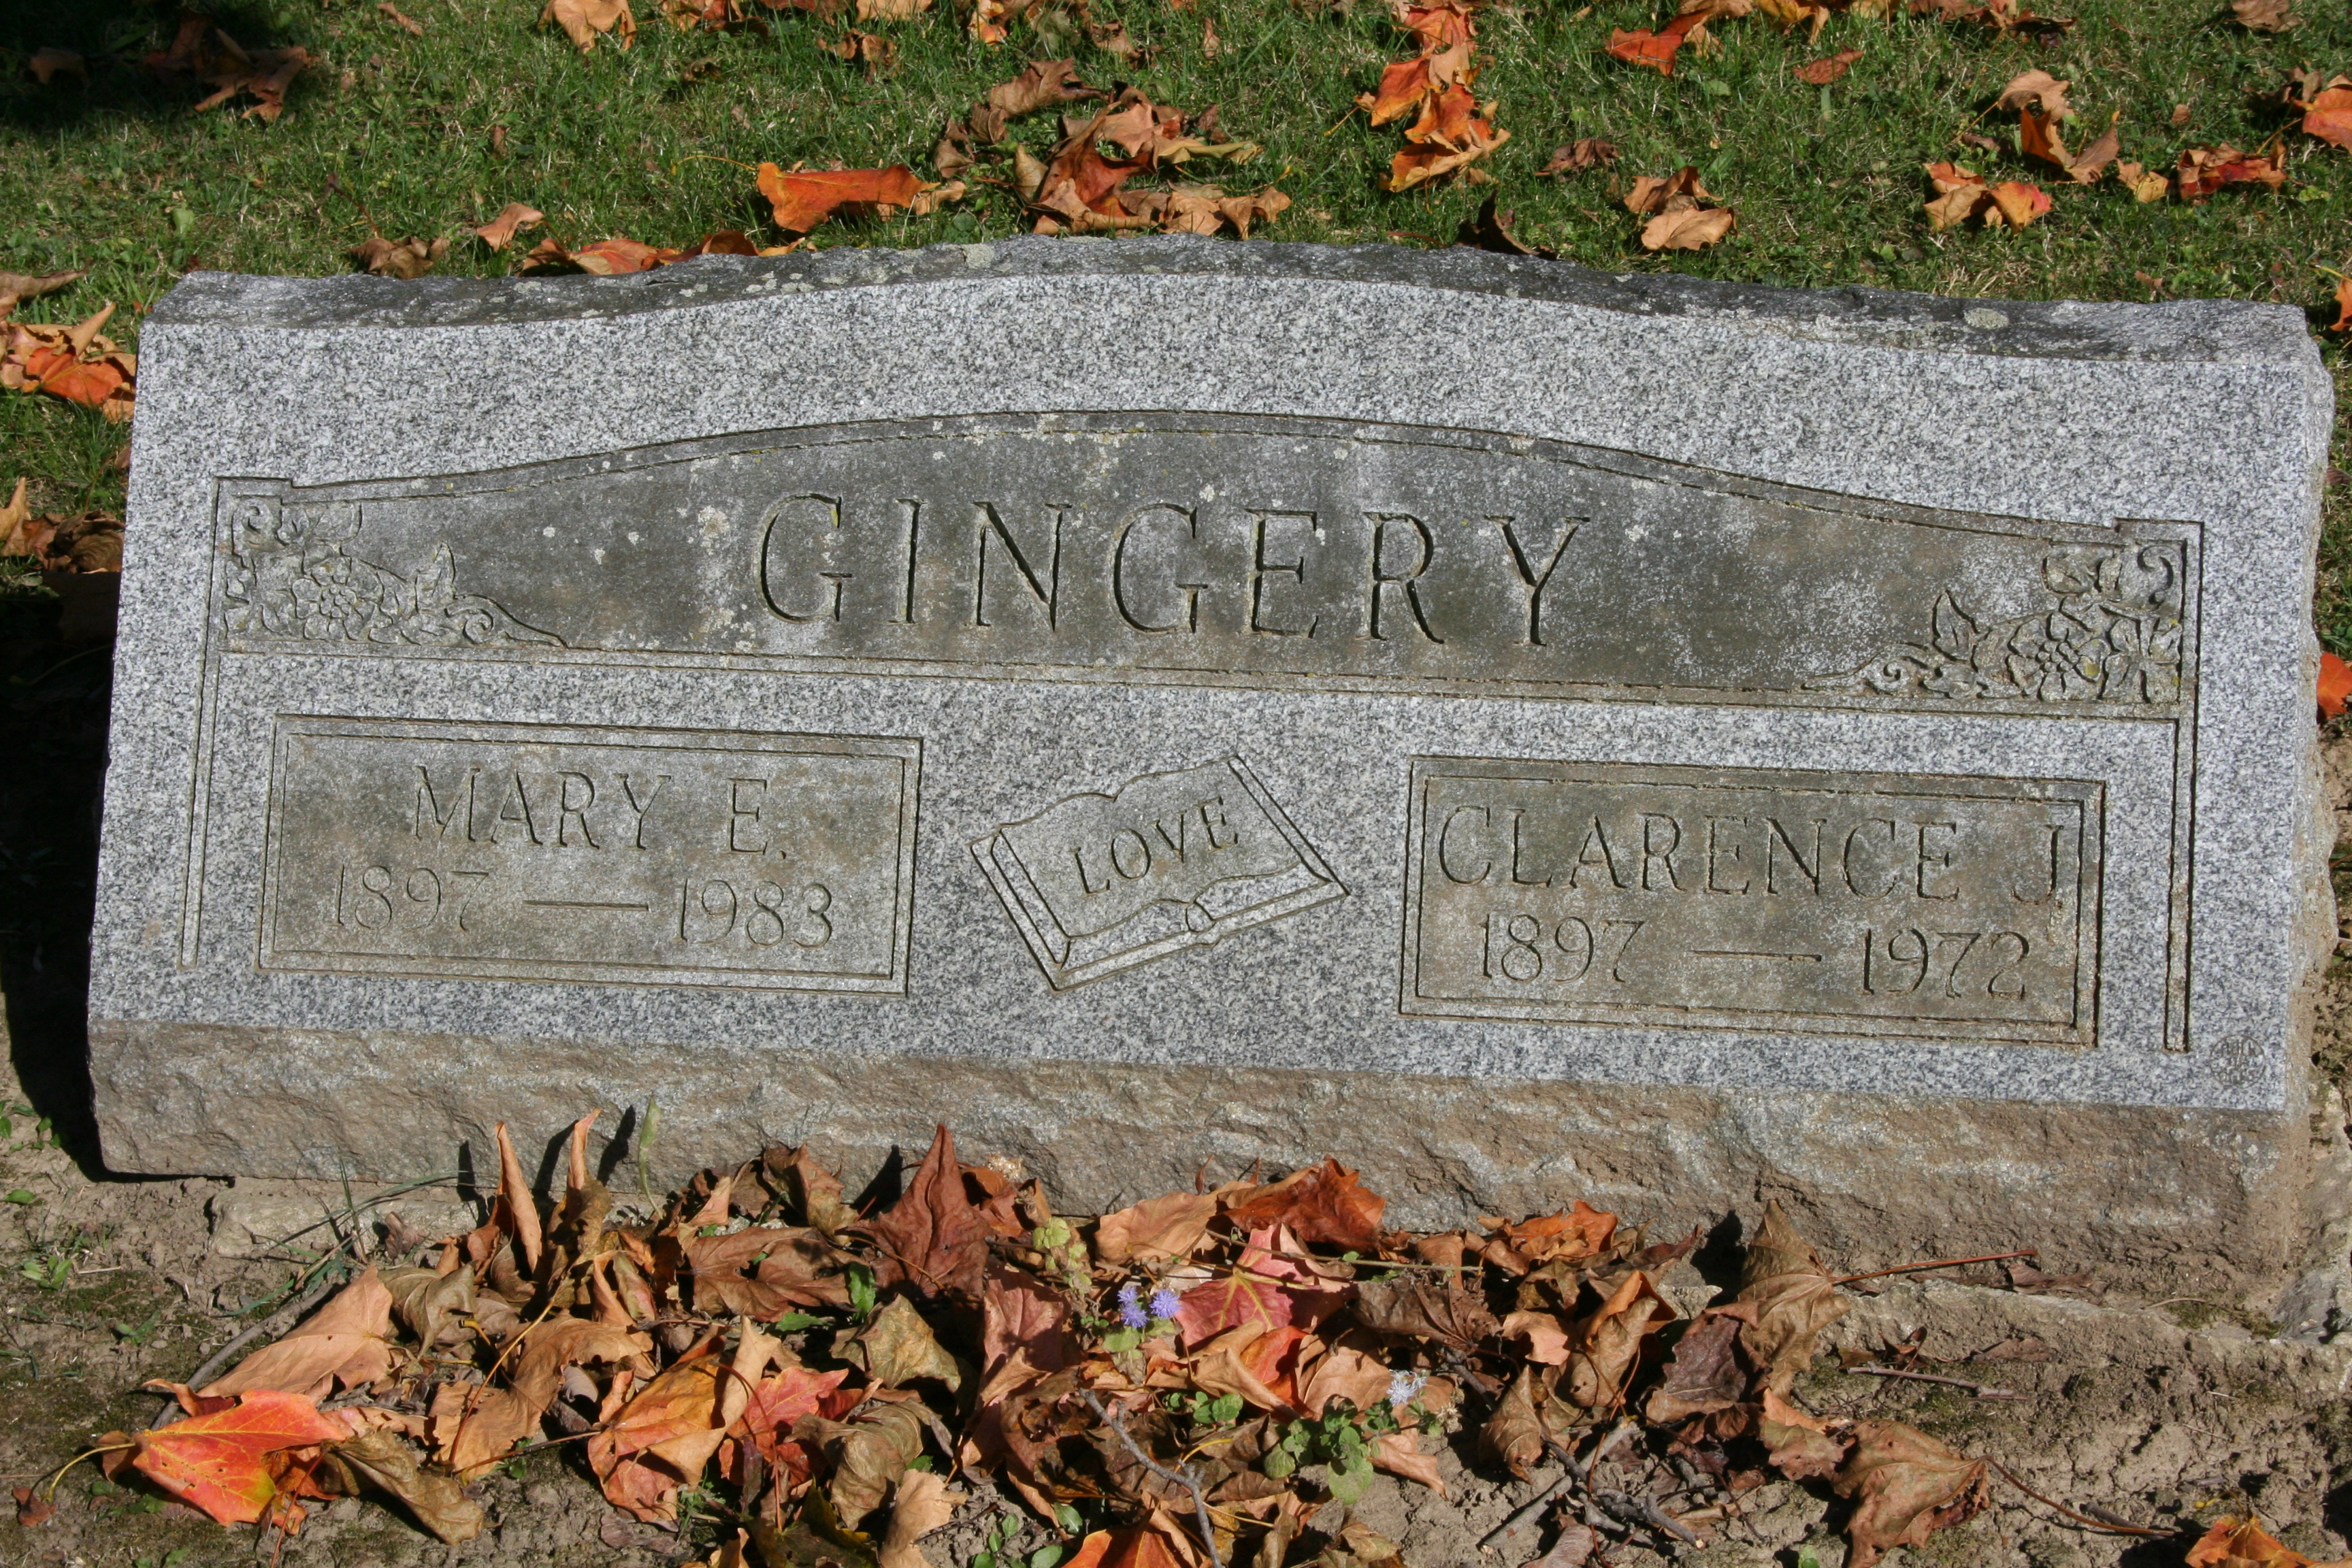 Mary Gingery